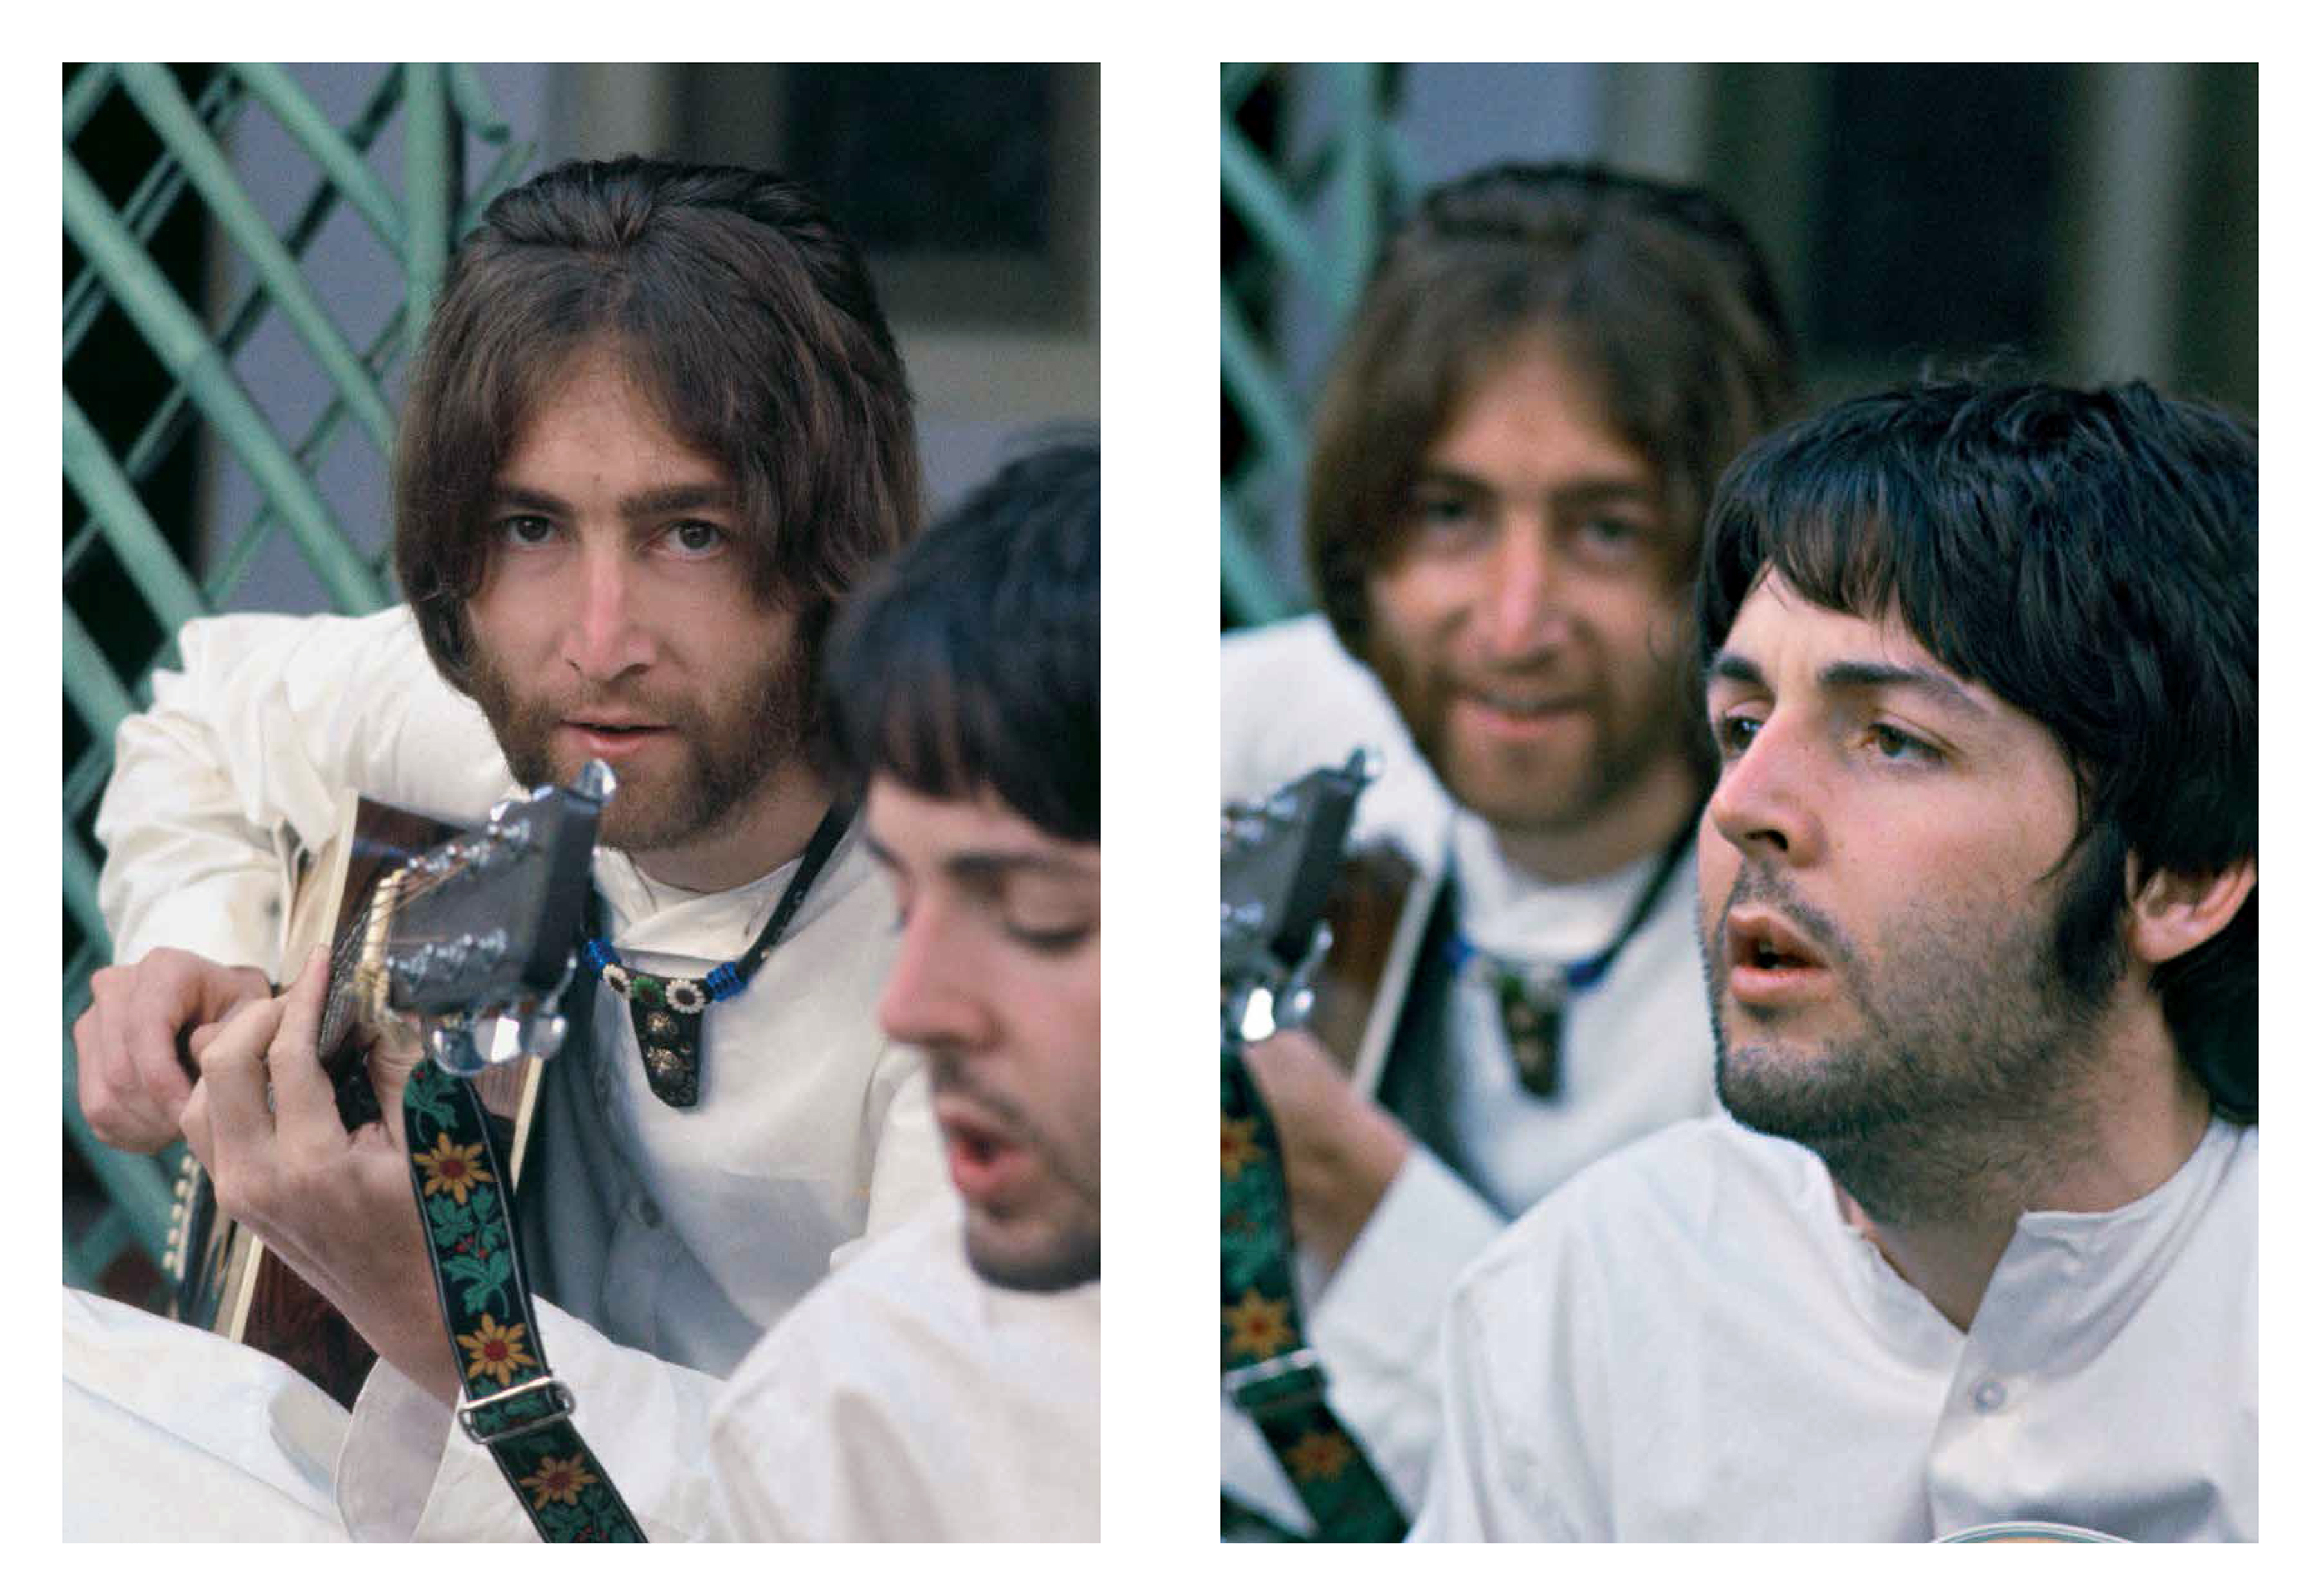 John Lennon and Paul McCartney in India.